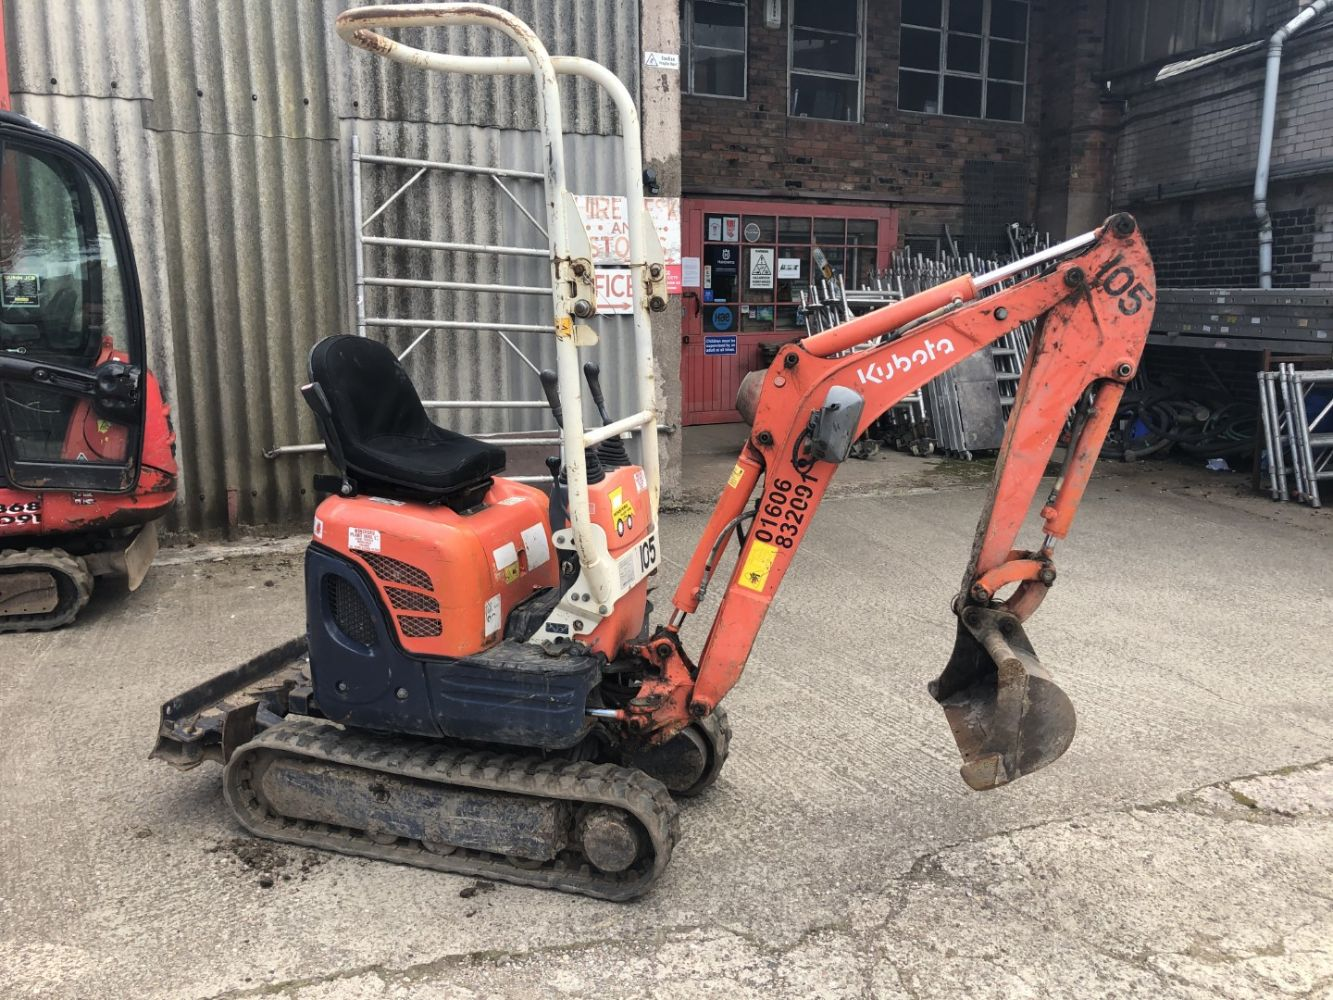 Winsford Plant Hire Limited - In Liquidation.